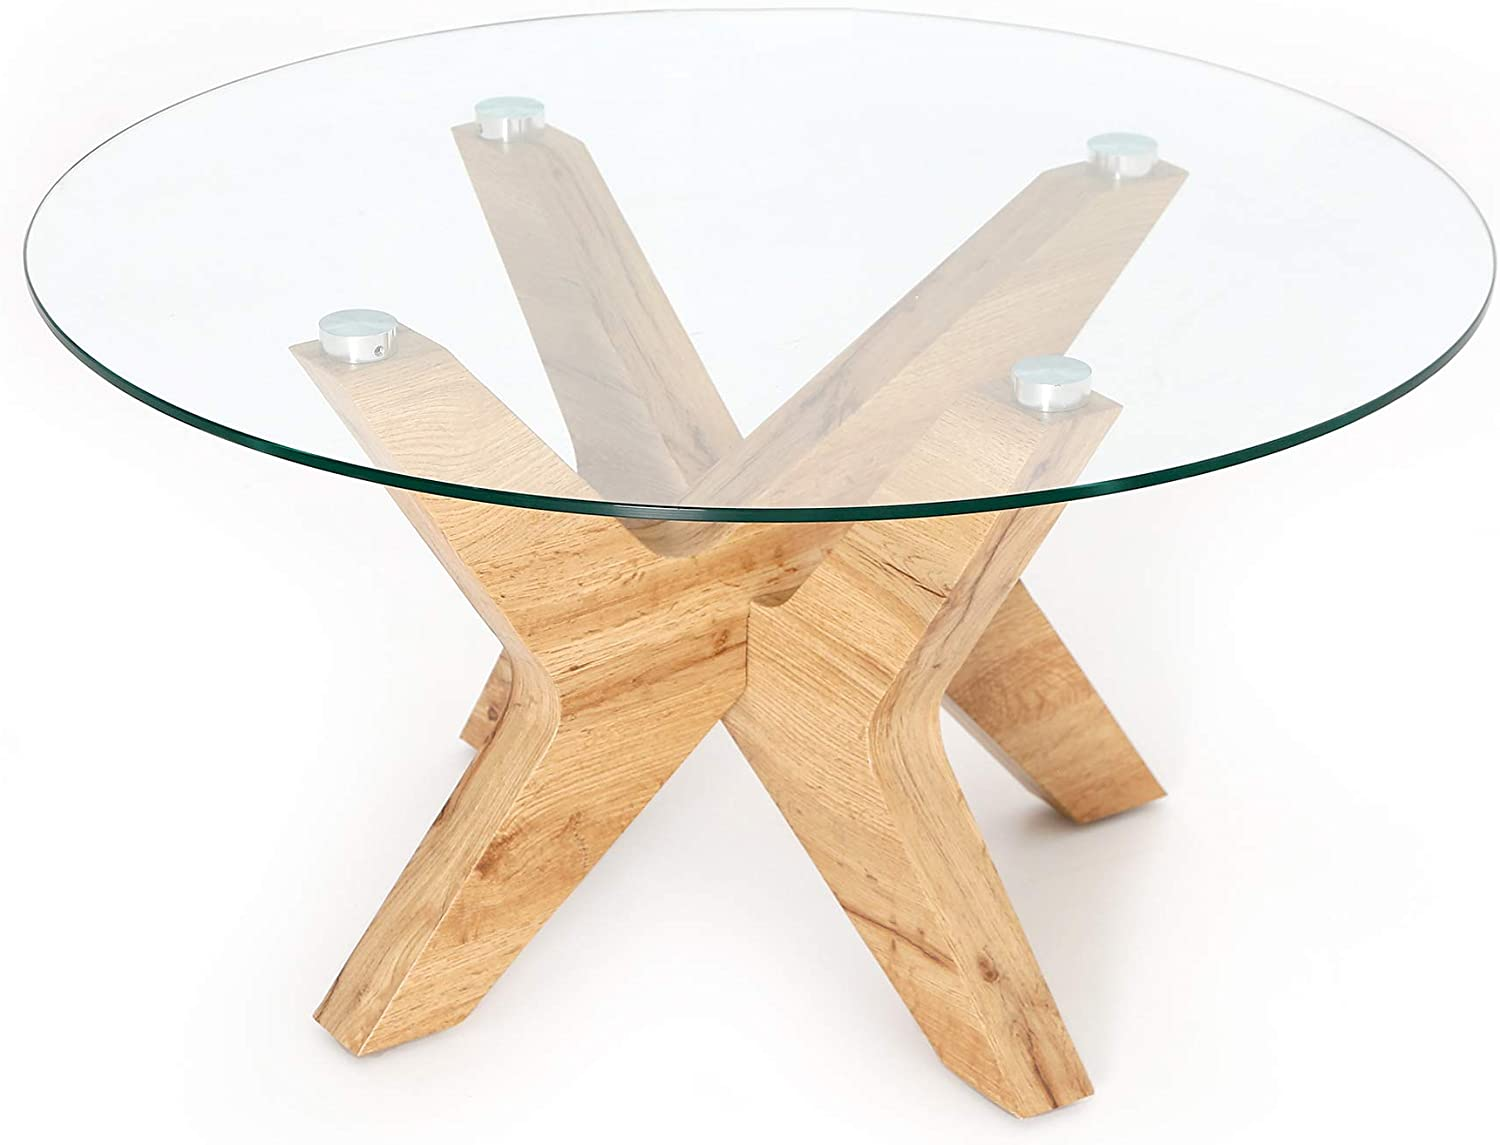 Amazon Com Ivinta Glass Coffee Table Round Industrial Design With Wood Frame For Living Room Home Dining Room 32inch Kitchen Dining